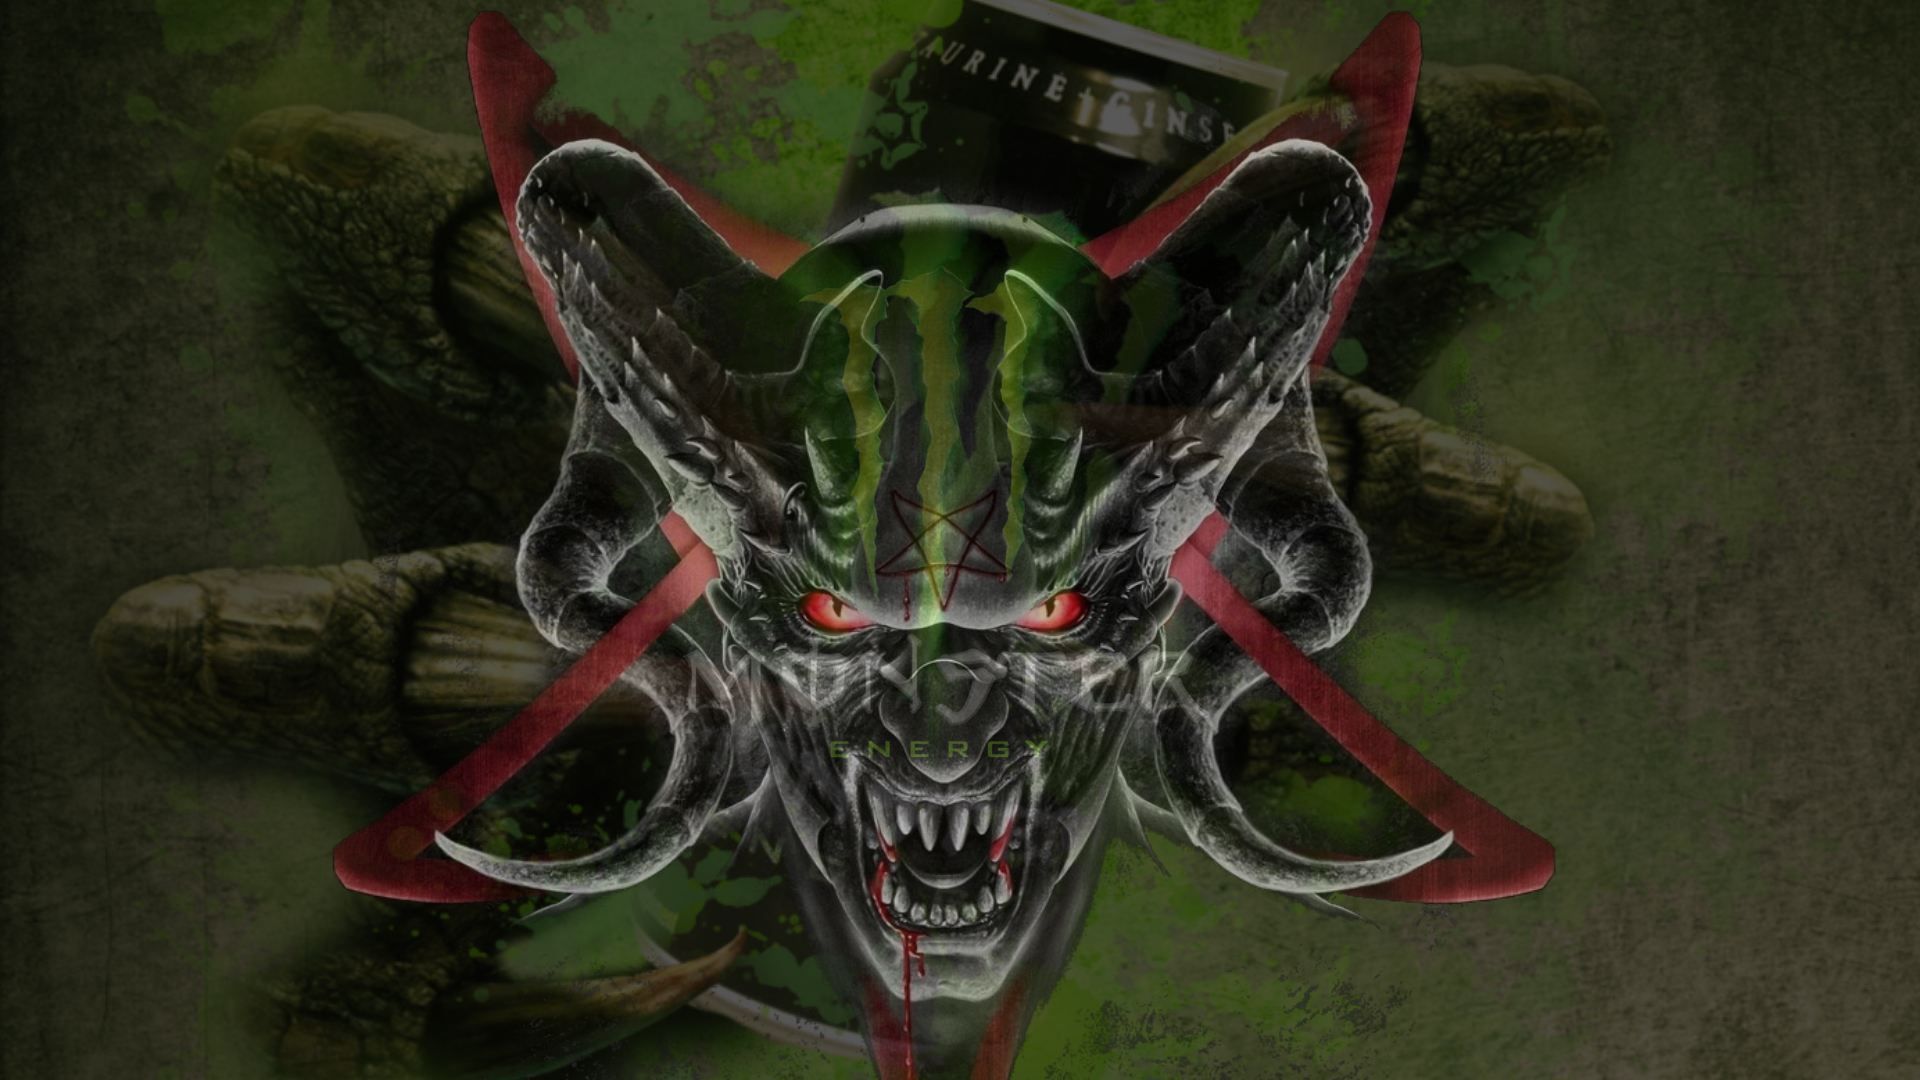 1 monster energy hd wallpapers background images wallpaper abyss voltagebd Choice Image